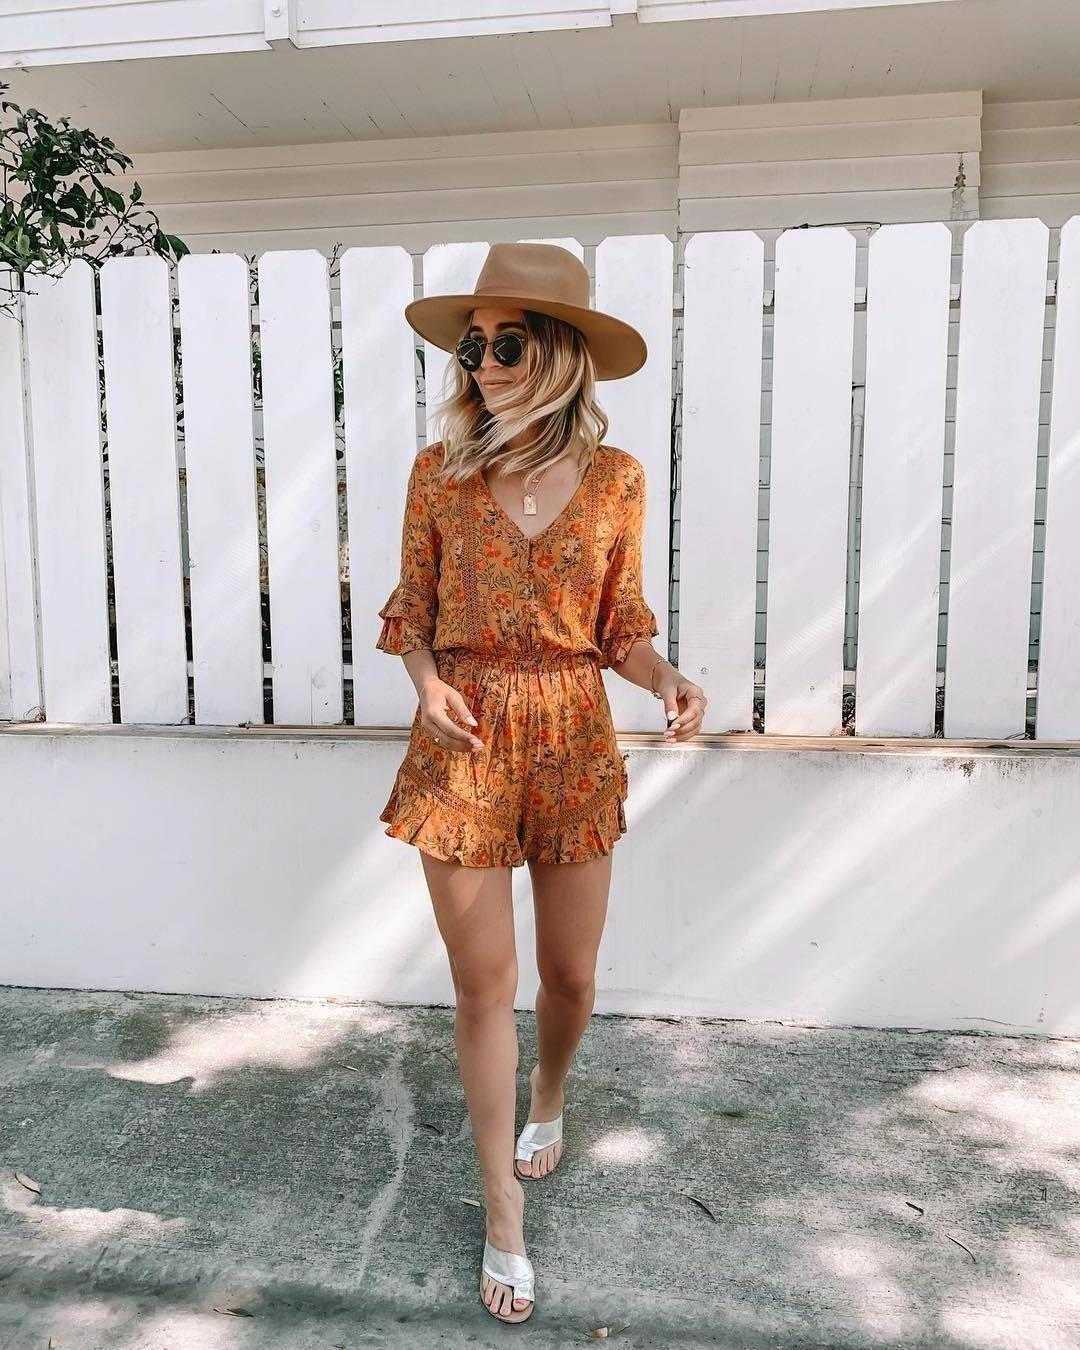 Romper Multicolor Romper Floral Sandals Summer Outfits Sunglasses Hat cover image